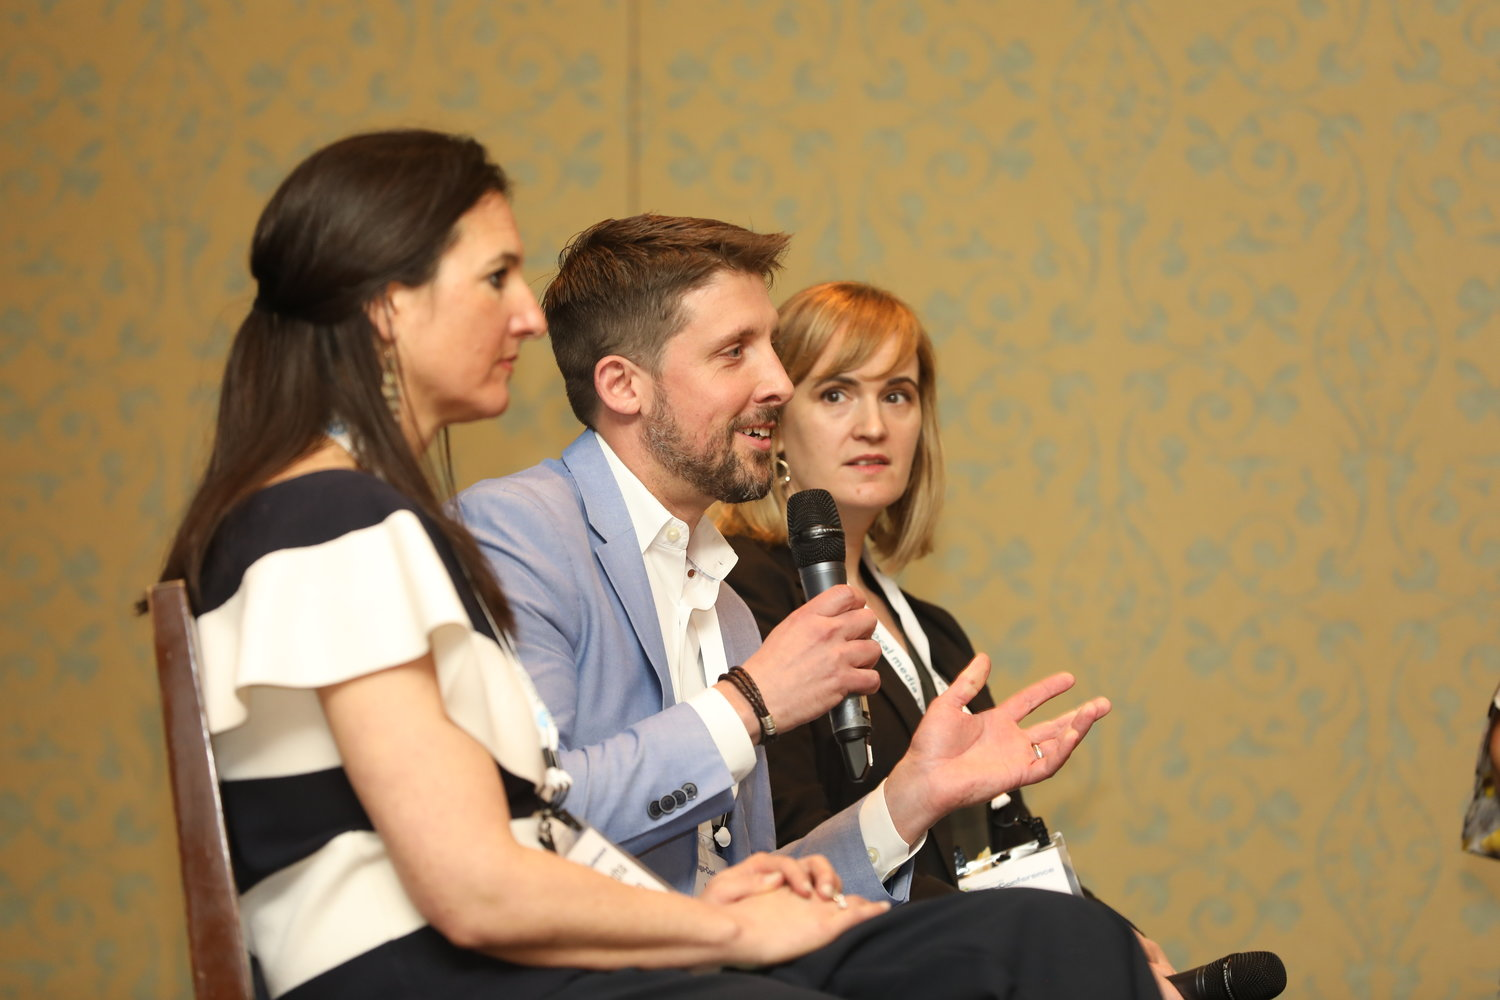 Branded Content: Samantha Johnston, Jared Merves and Amber Aldrich at the Mega-Conference. (Photo by Bob Booth)